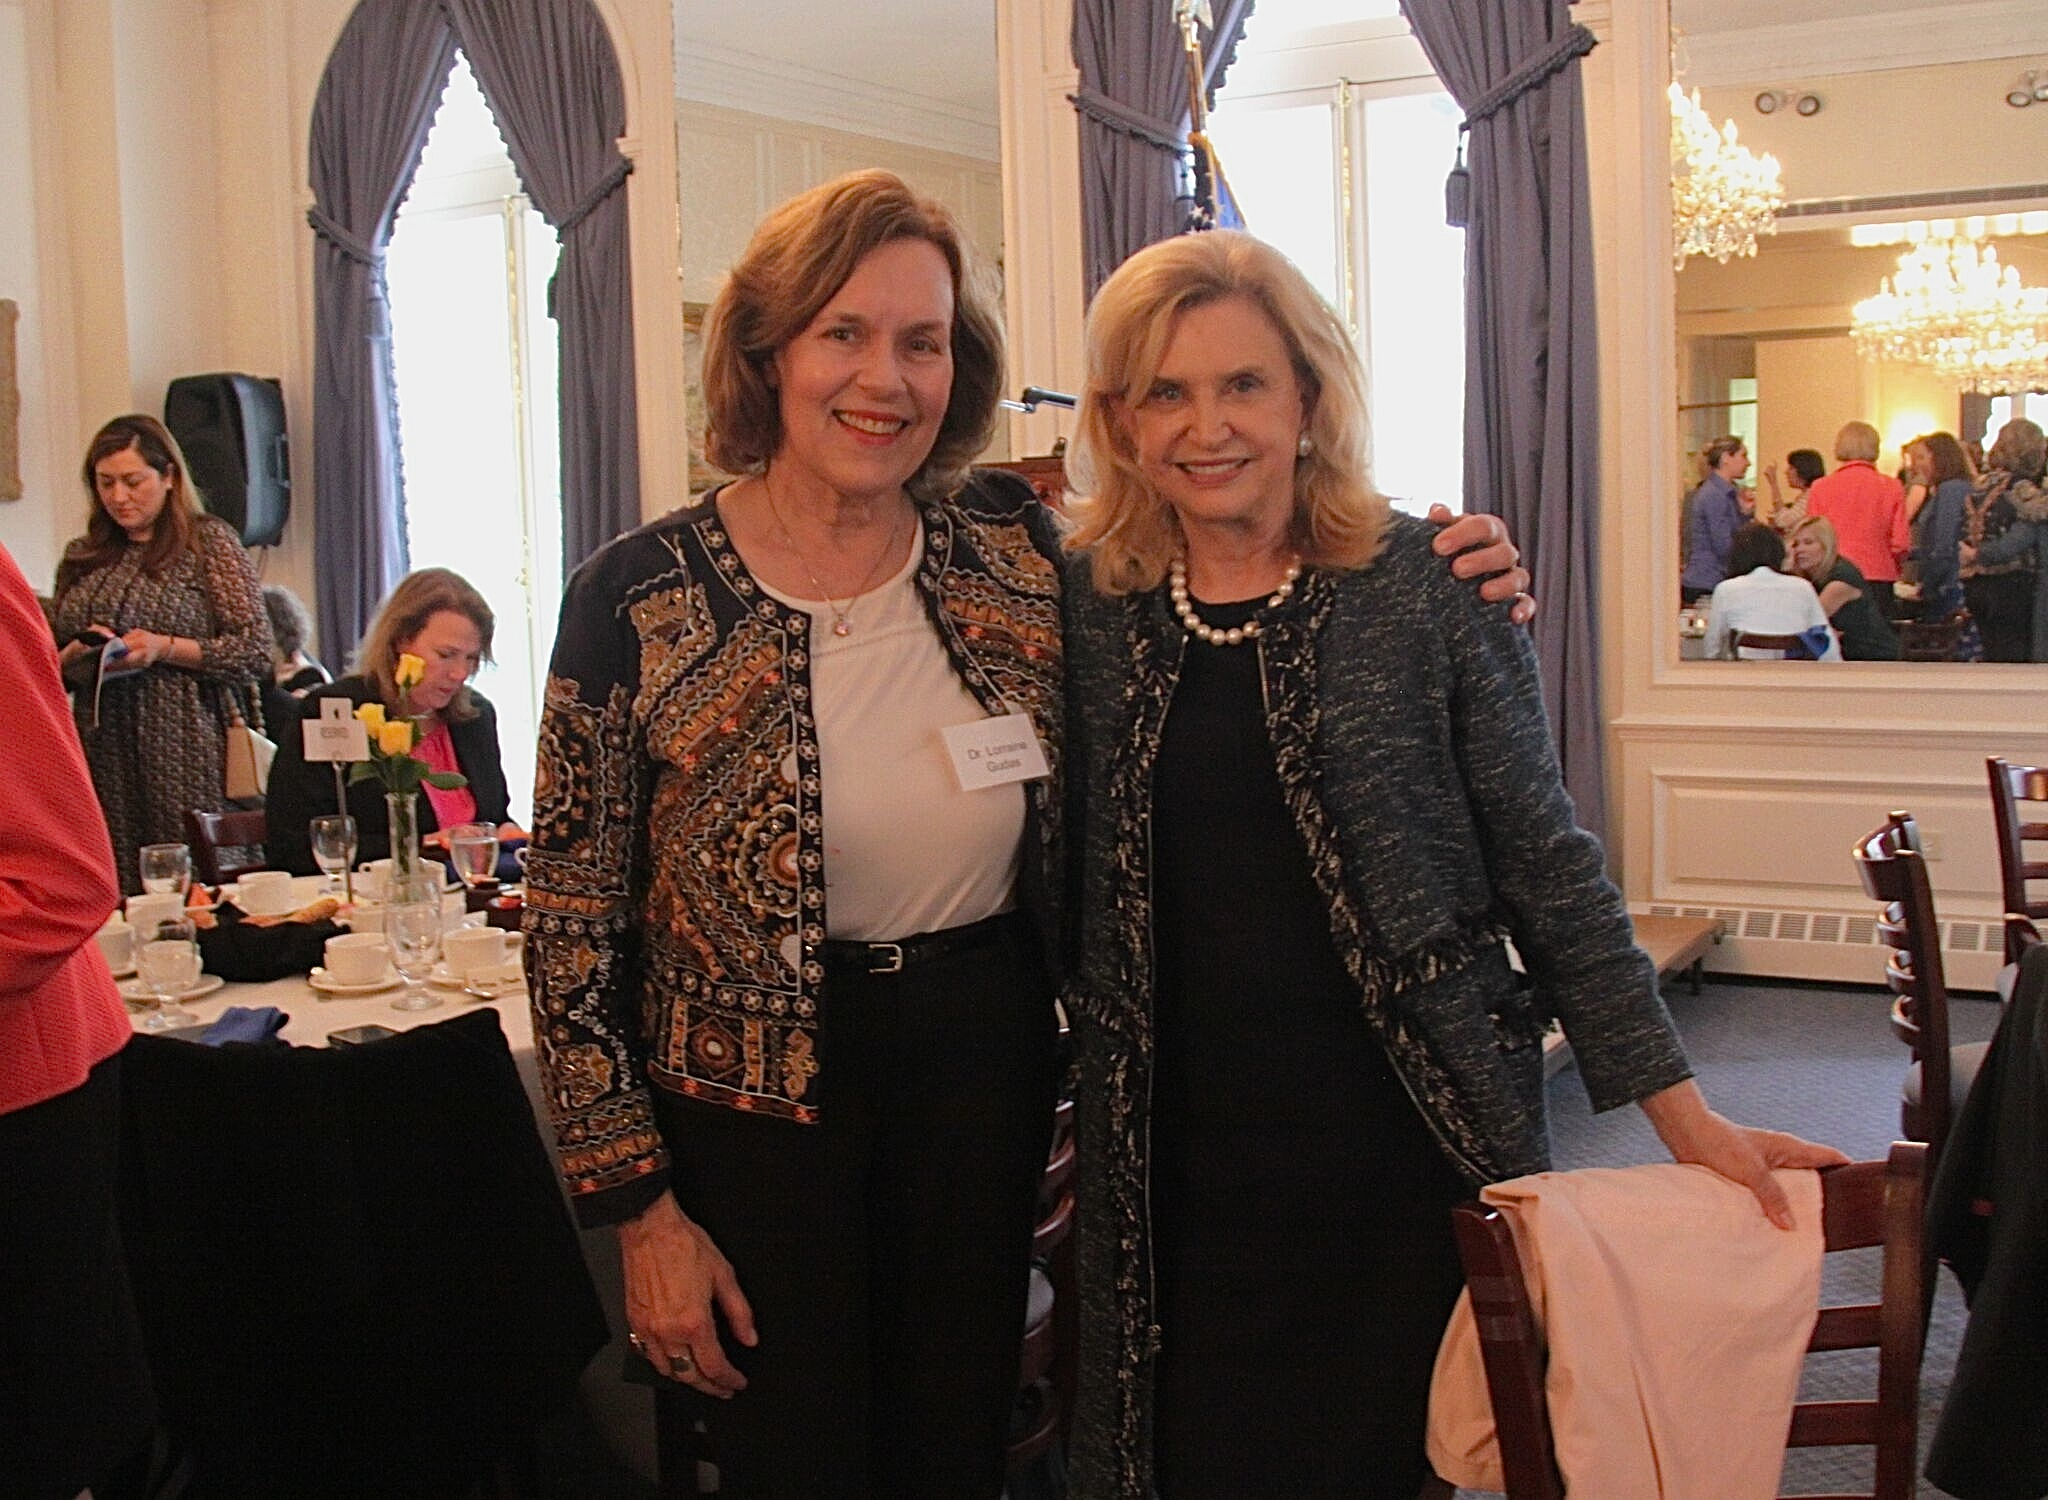 Lorraine & Rep. Carolyn Maloney, June, 2017